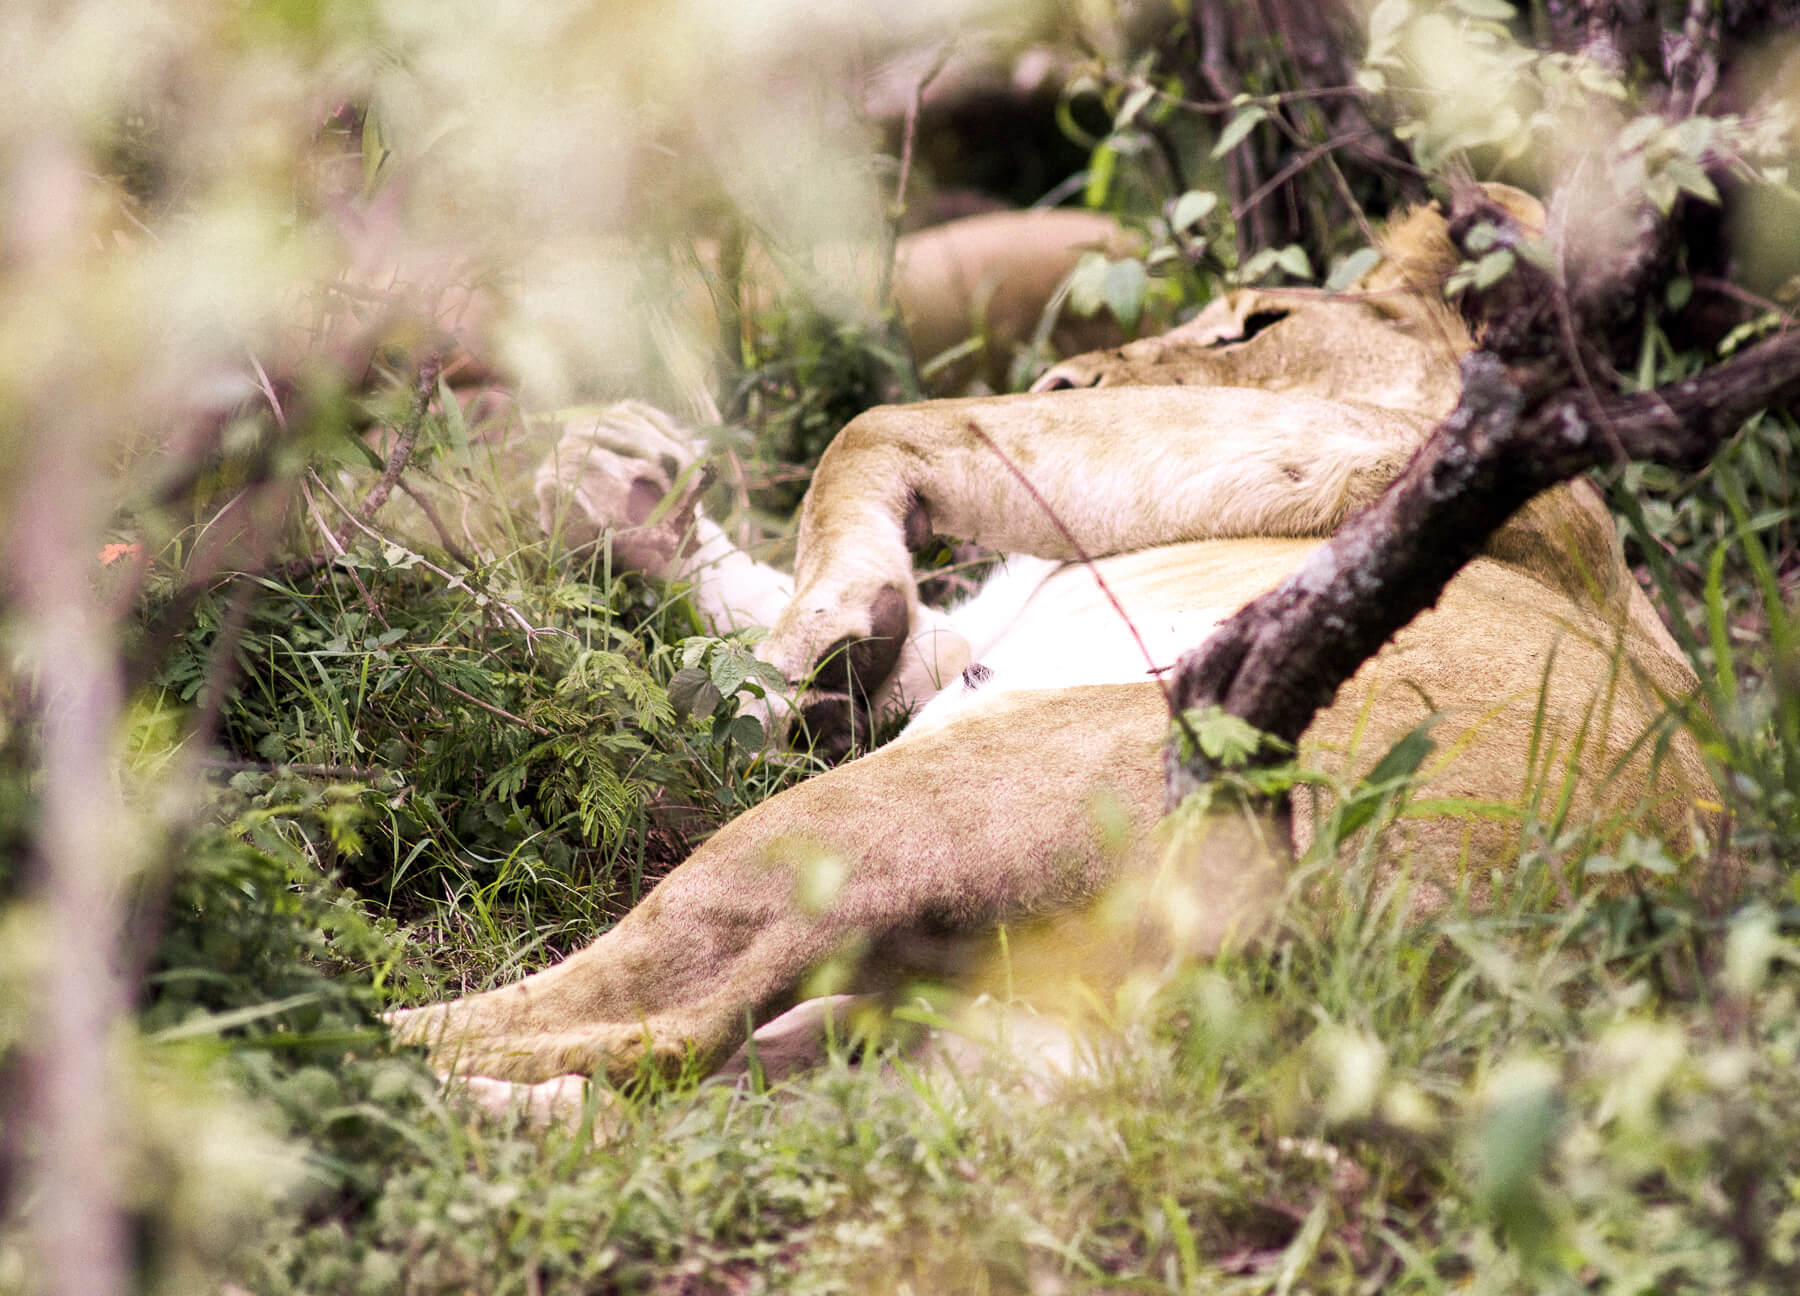 A lioness sleeping on her side in the bushes